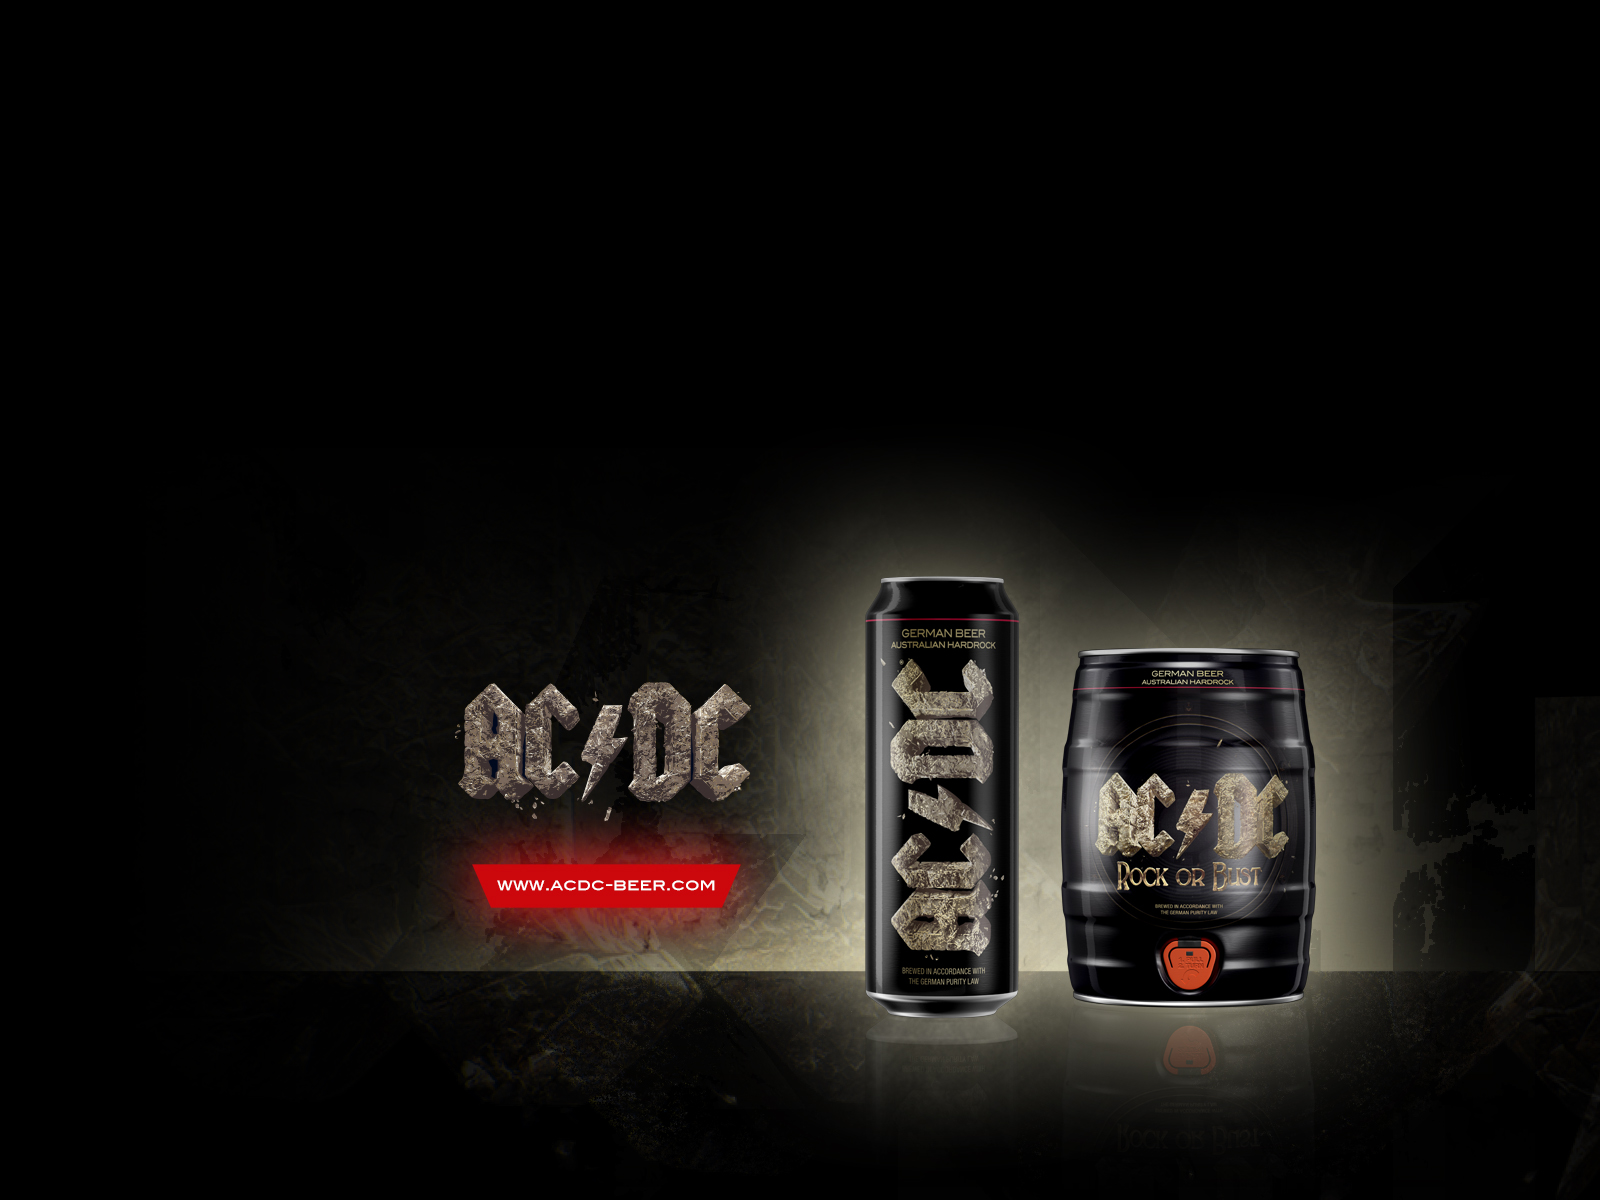 AC DC Beer Pics, Food Collection